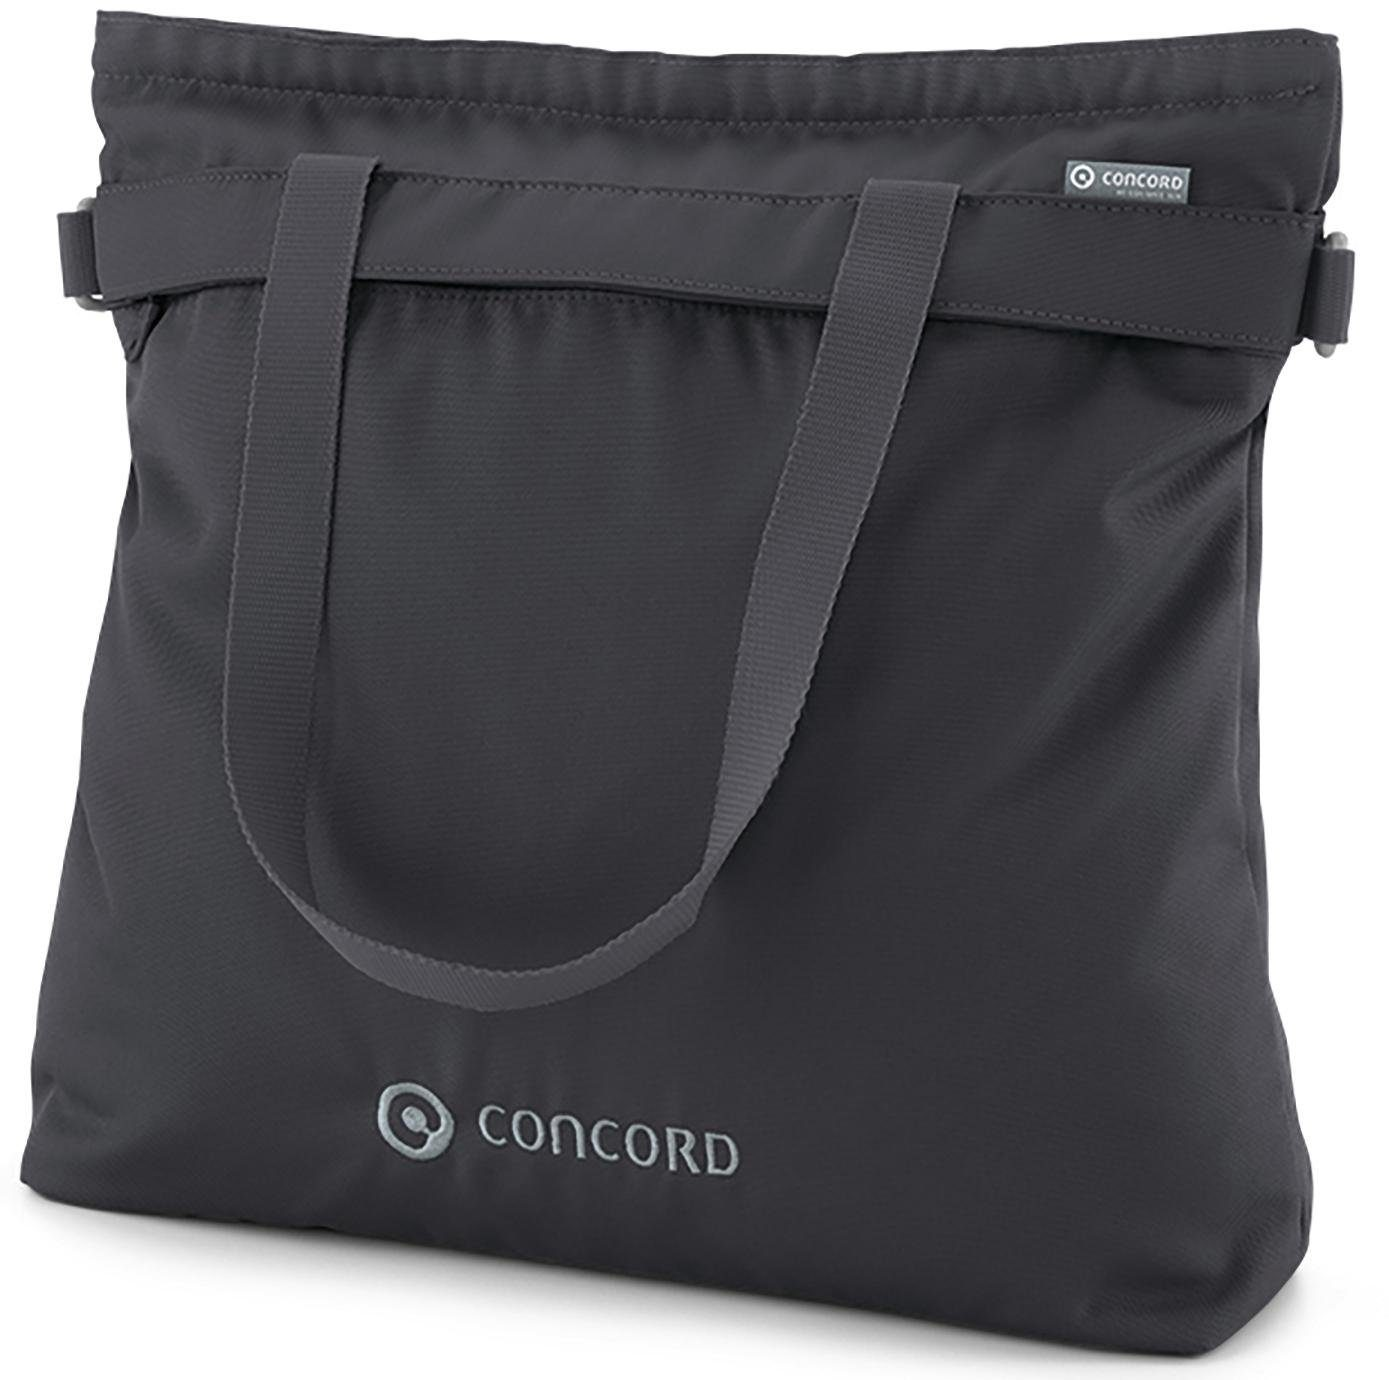 Concord Wickeltasche mit Wickelunterlage, »Shopper, Cosmic Black«